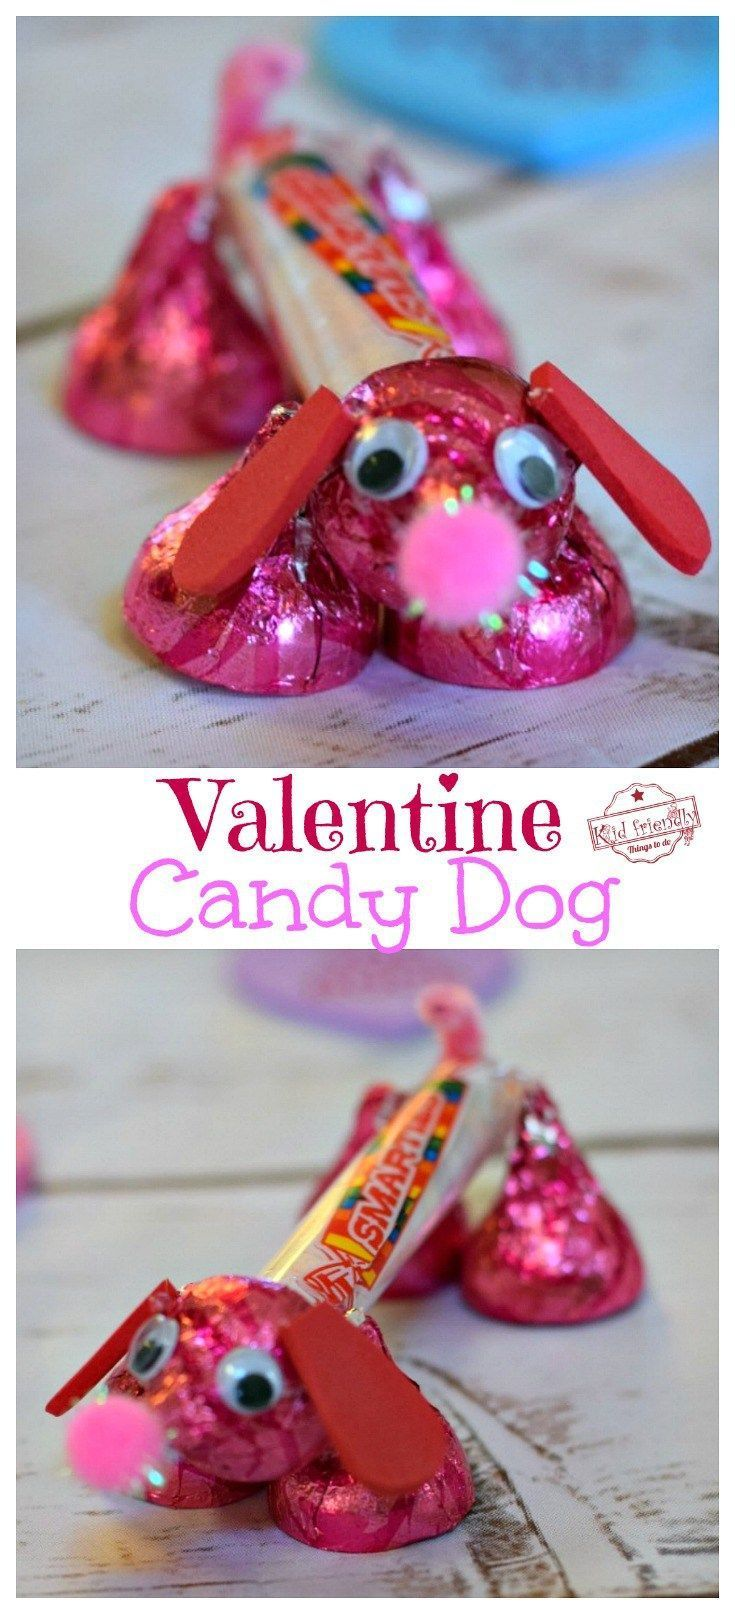 Make a Valentine's Candy Dog for a Fun Kid's Craft and Treat - Easy and Fun to Make! Made from Hershey's Kisses and Smarties Candy. So cute! #valentinesday